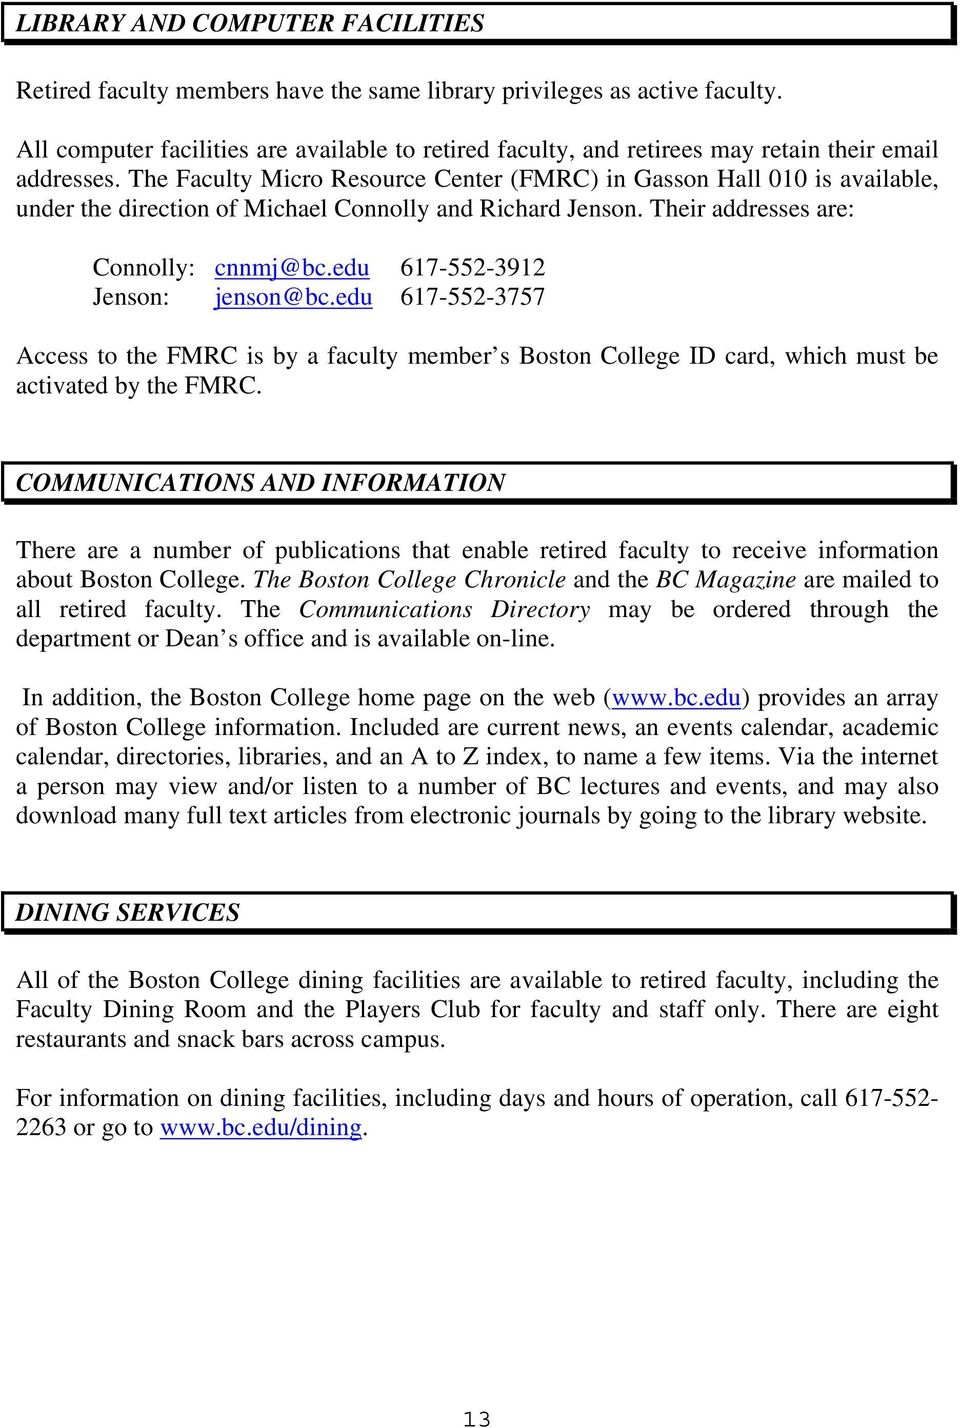 The Faculty Micro Resource Center (FMRC) in Gasson Hall 010 is available, under the direction of Michael Connolly and Richard Jenson. Their addresses are: Connolly: cnnmj@bc.